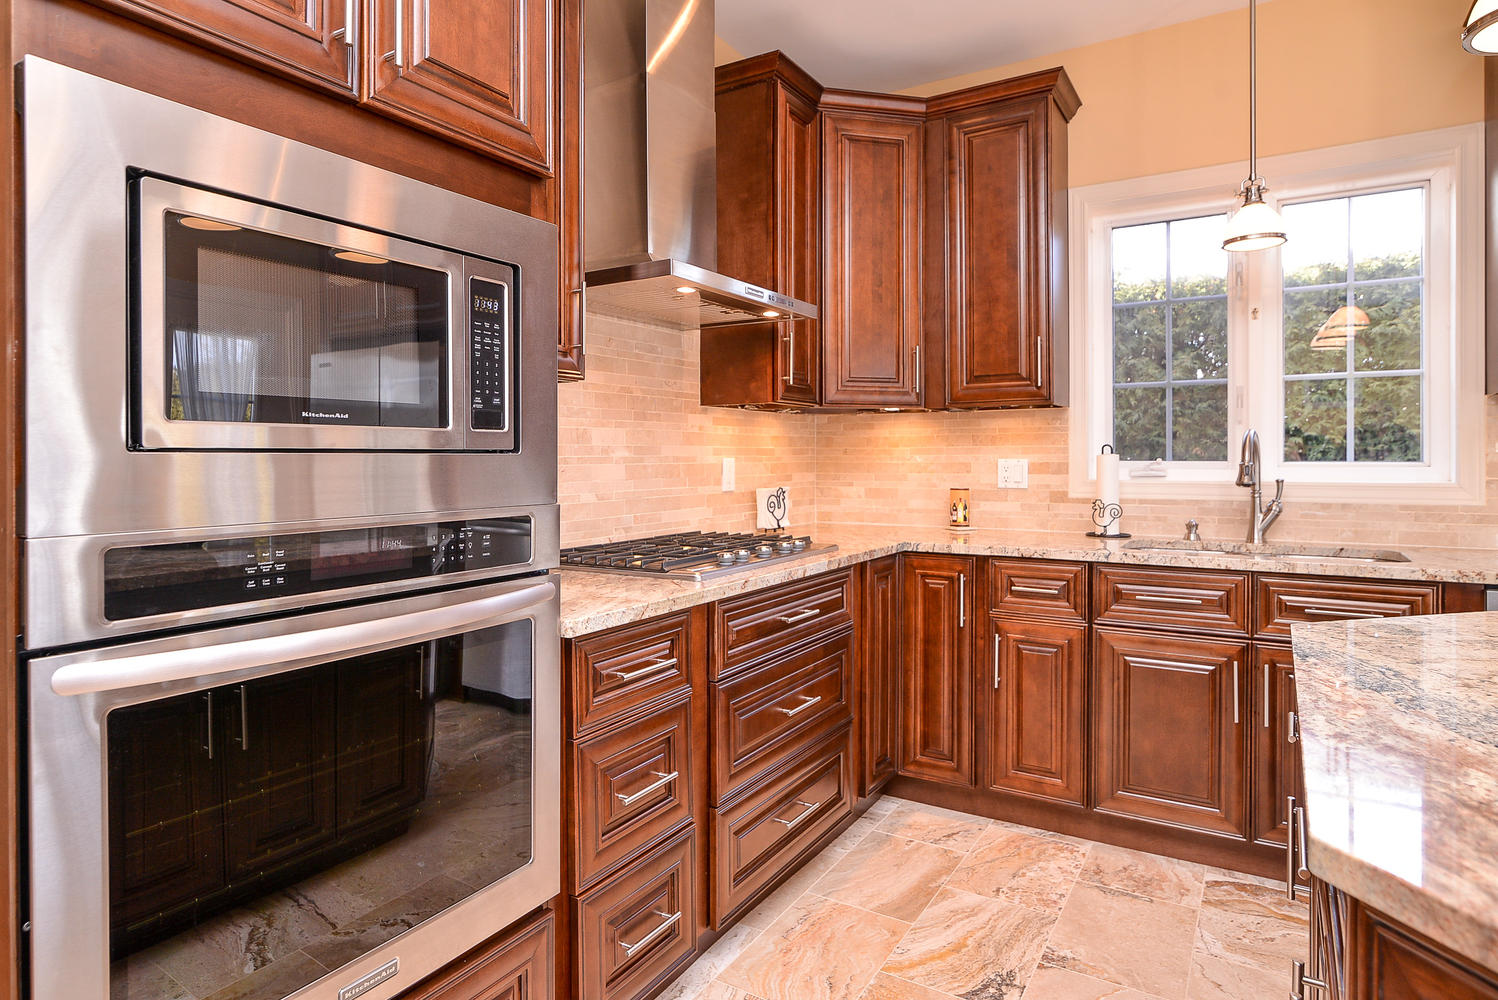 Kitchen Cabinets Blackmarsh Road Why Gec Cabinet Is The Best Store For Kitchen Renovation